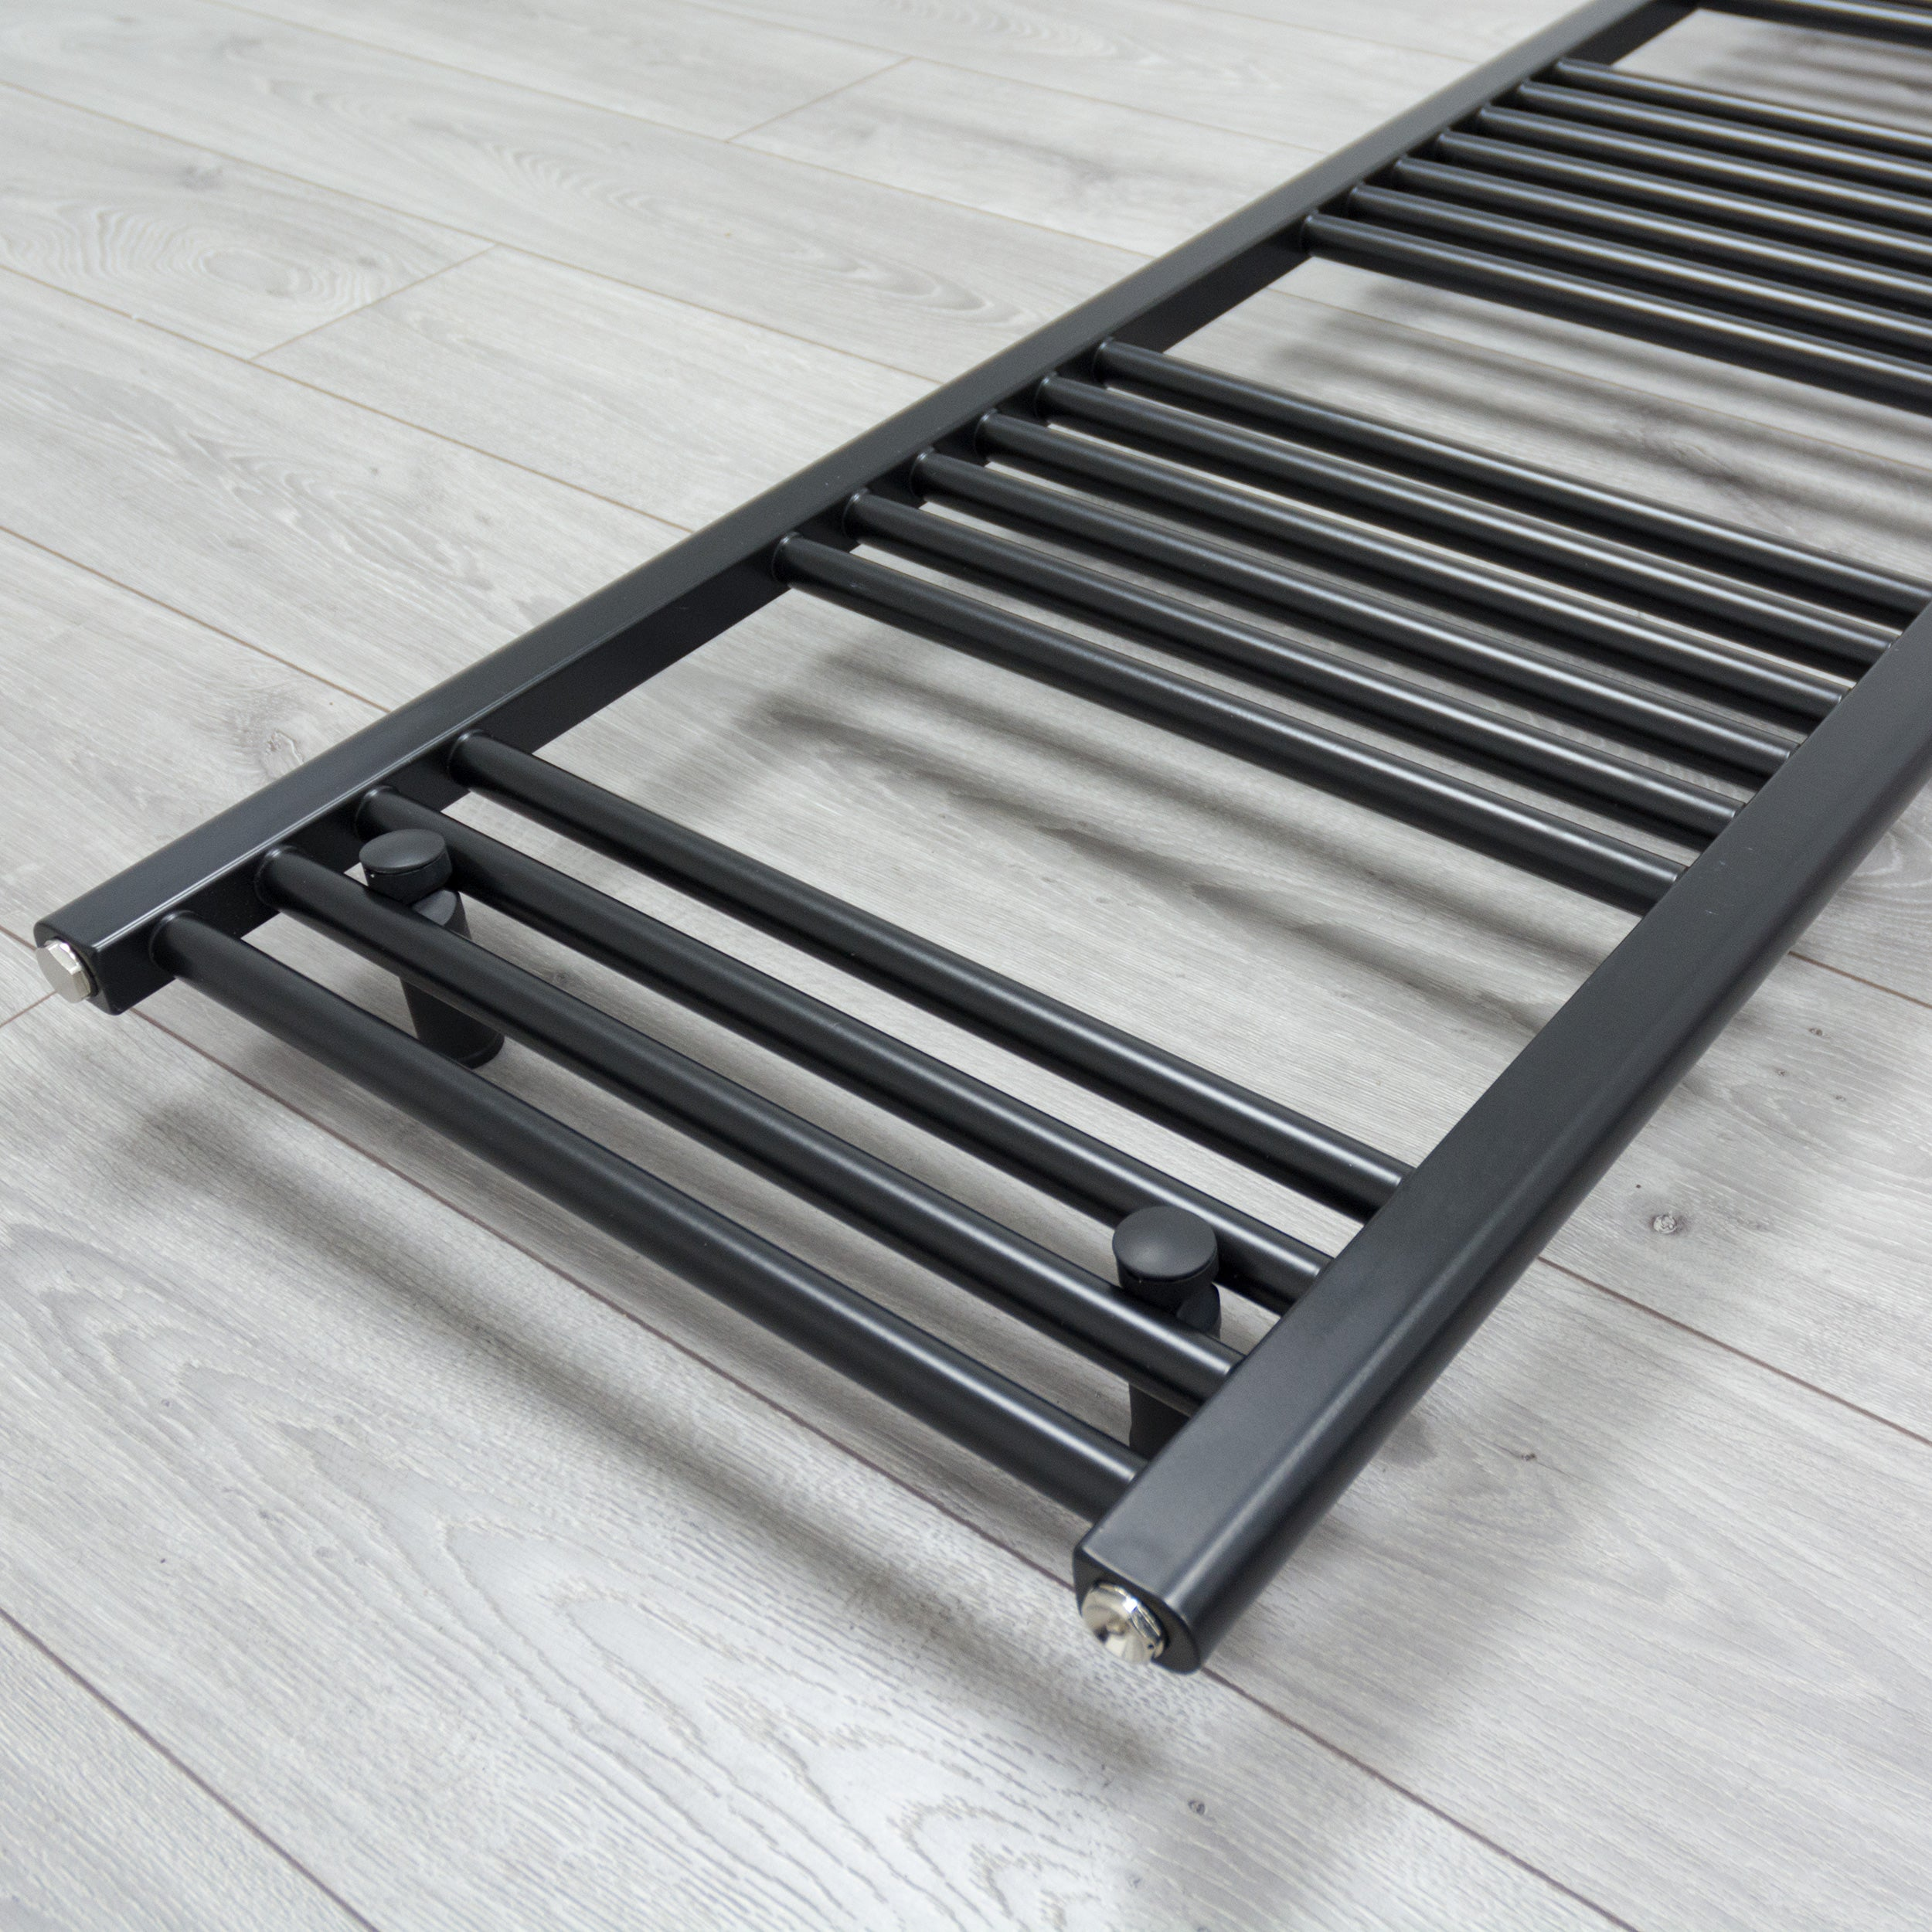 400mm x 1400mm Black Heated Towel Rail Radiator Close Up Image